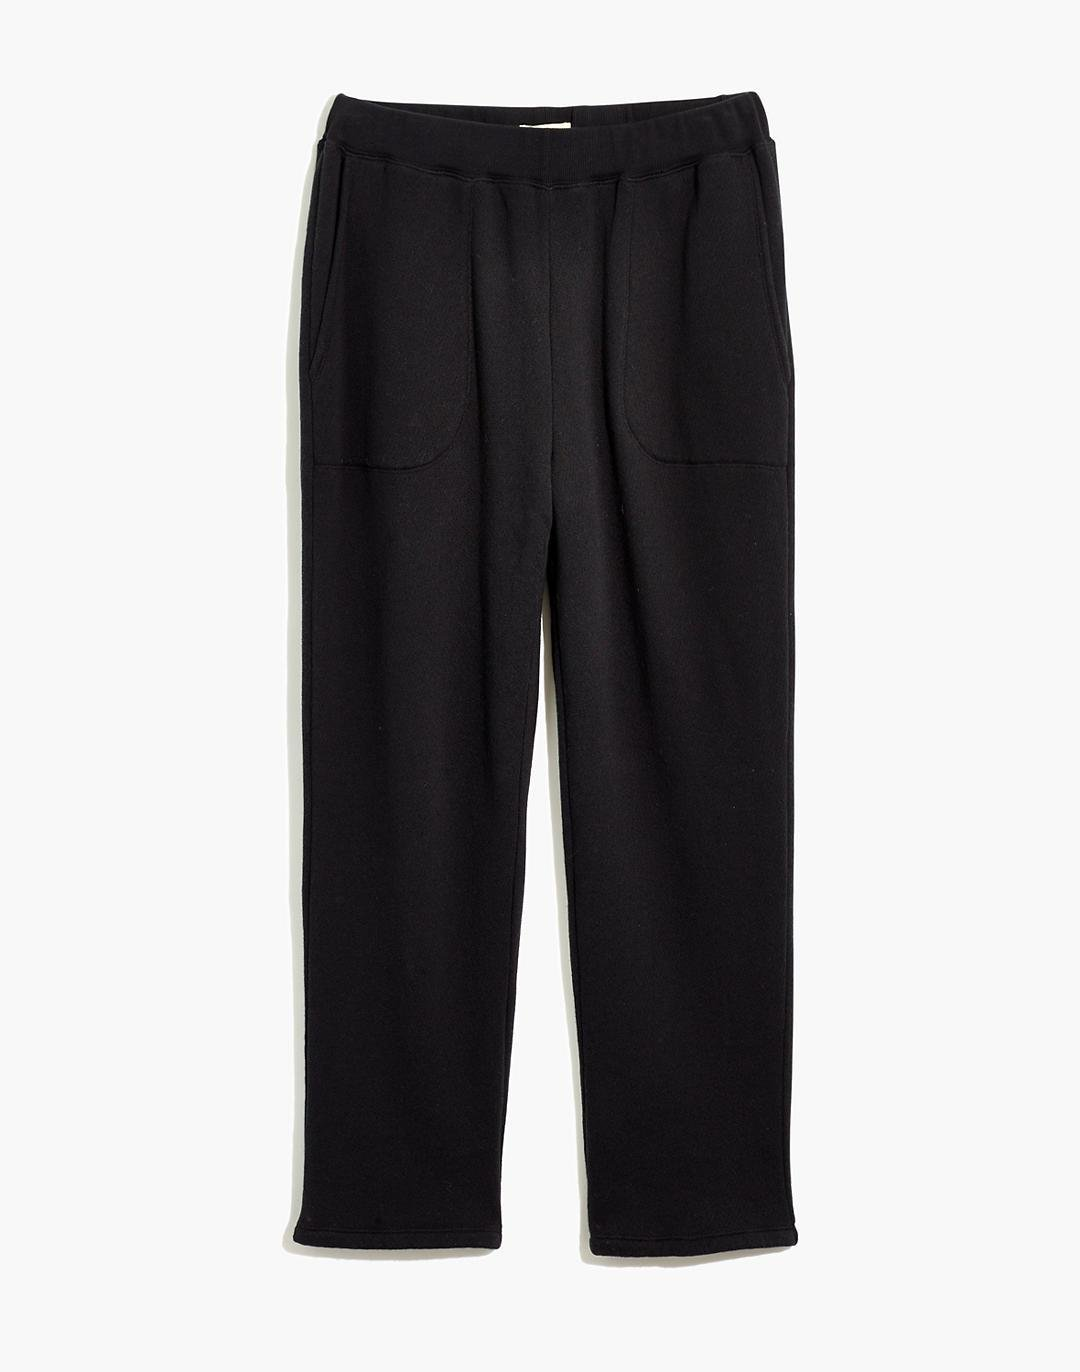 MWL Airyterry Tapered Sweatpants: Stitched-Pocket Edition 3